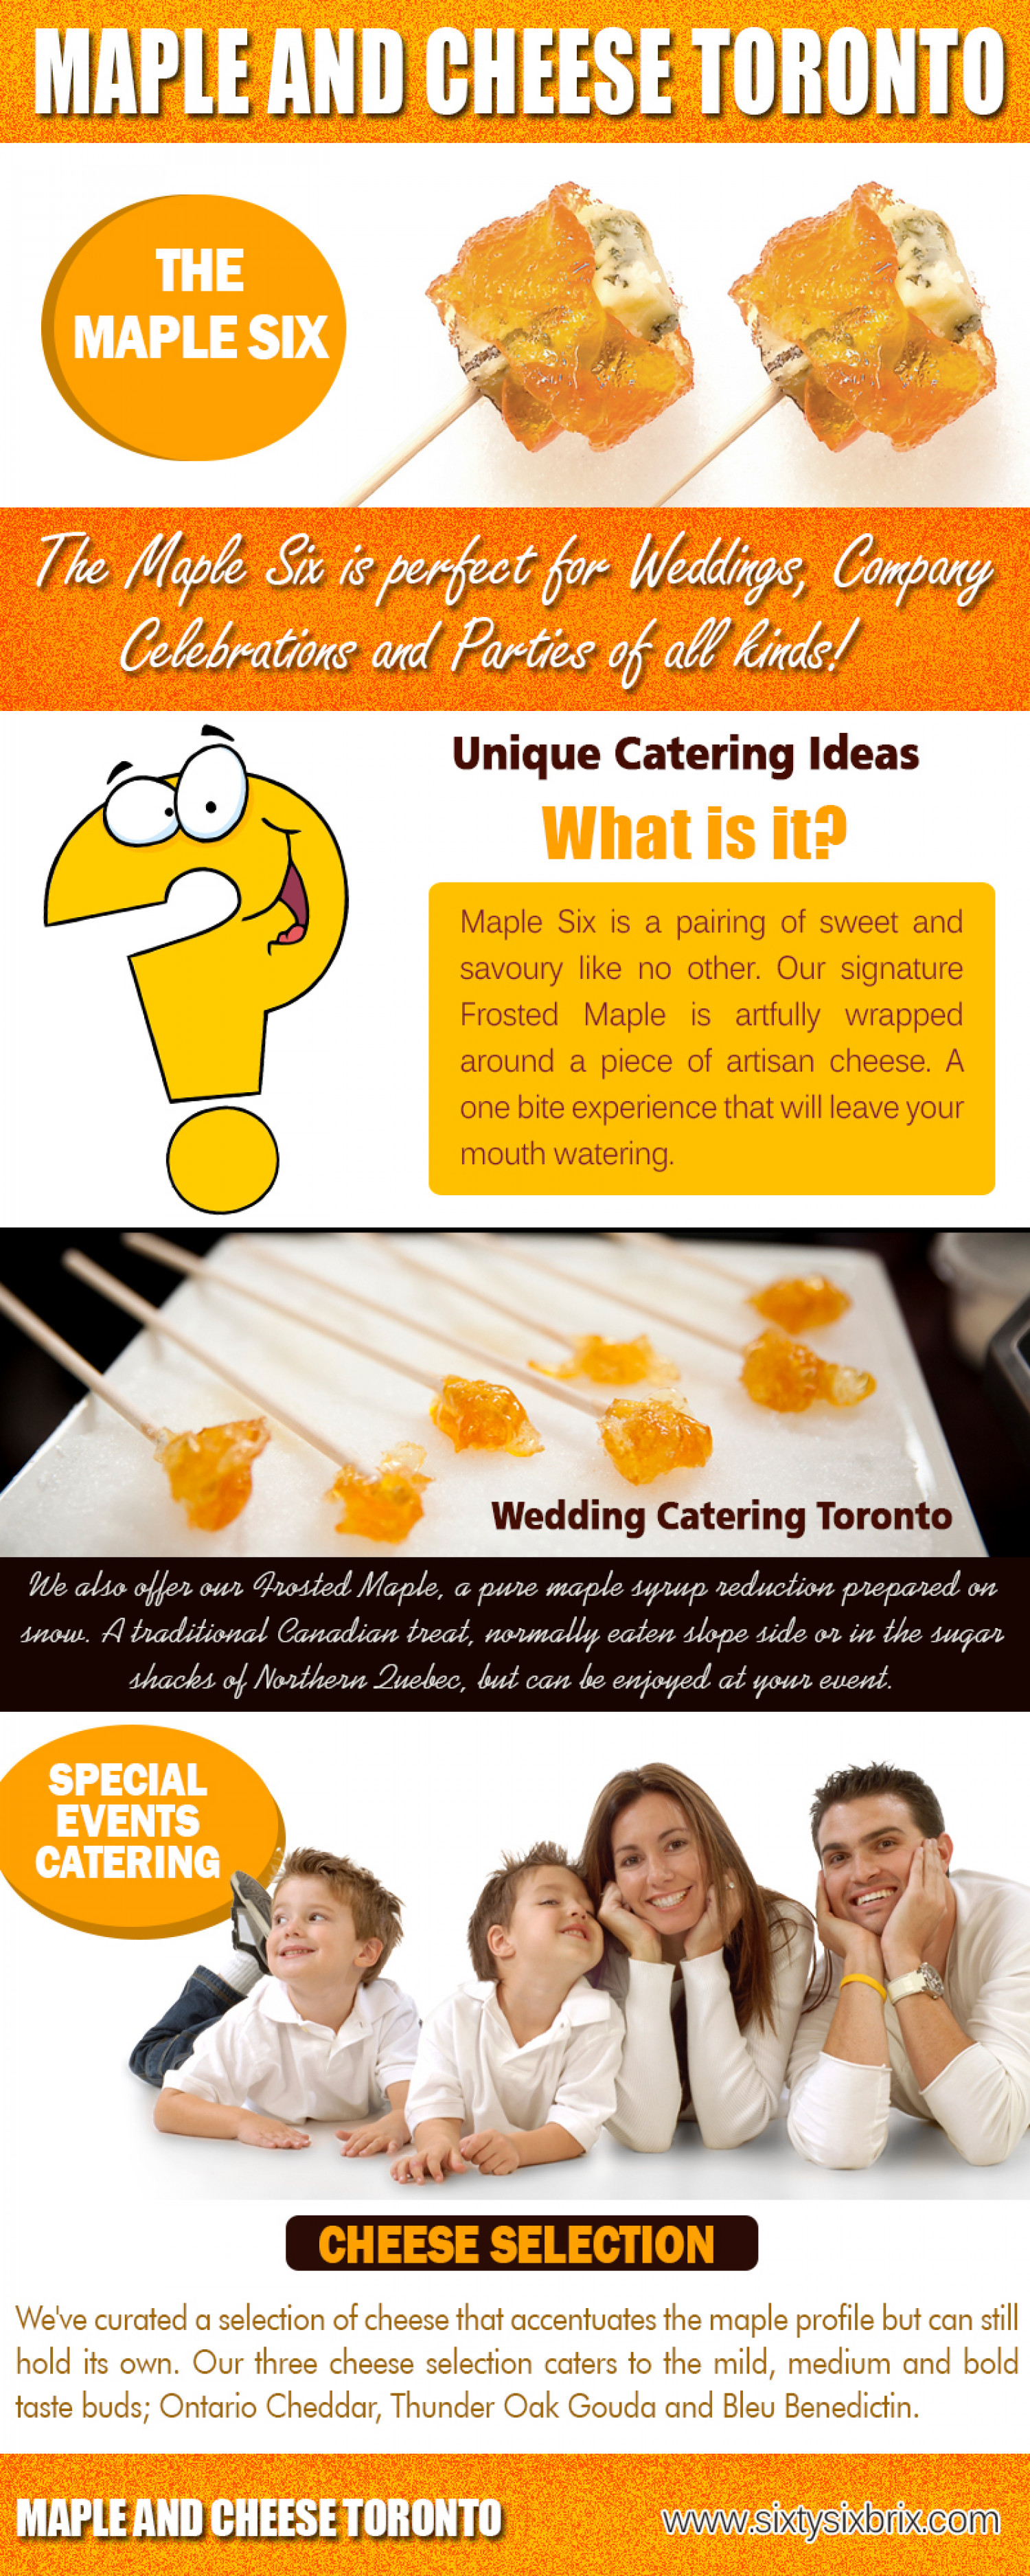 Maple and Cheese Toronto Infographic